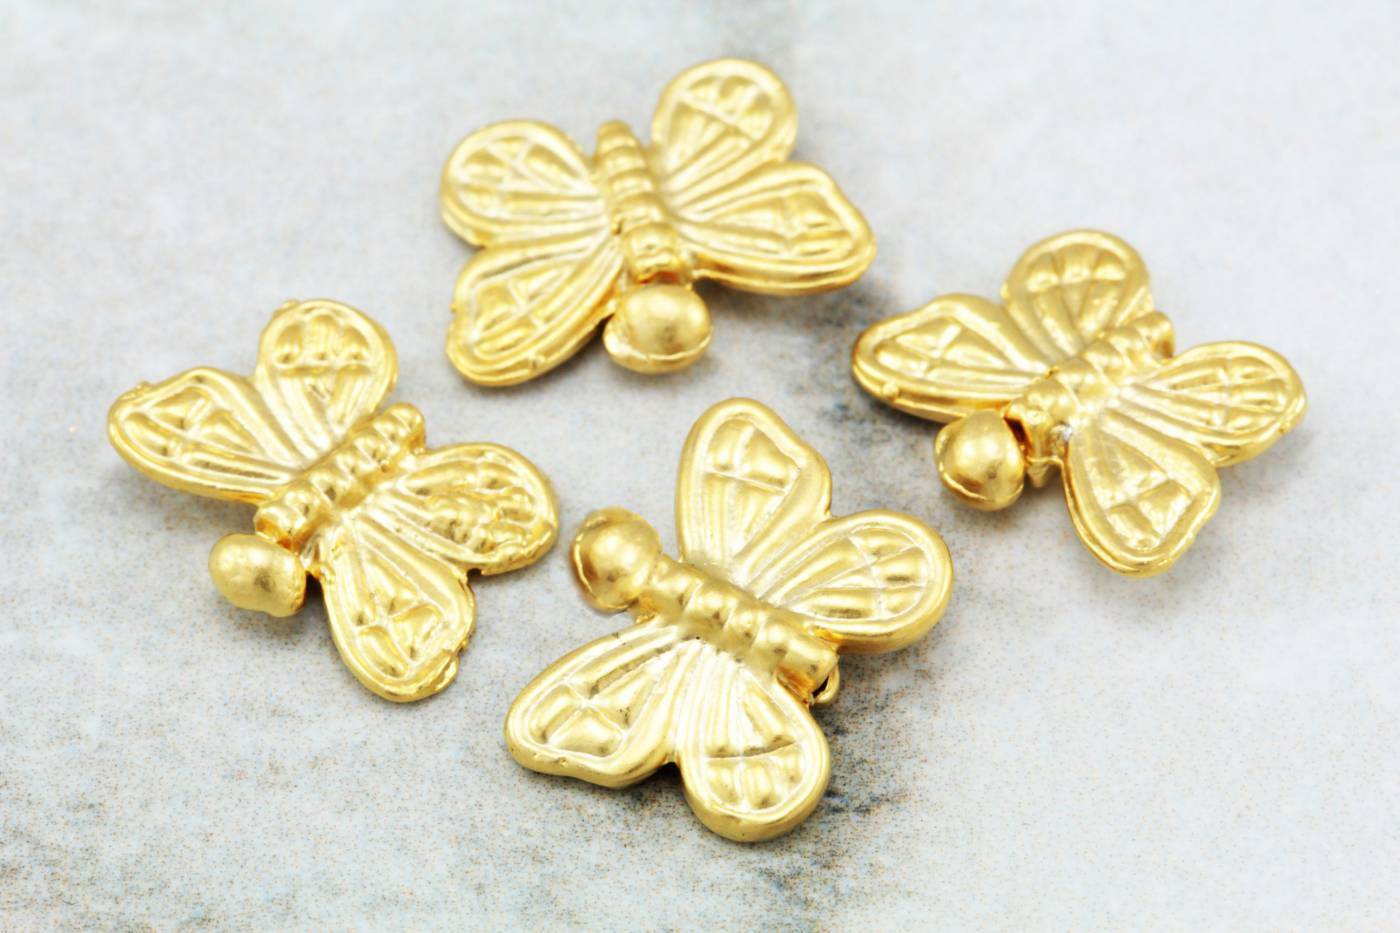 matte-gold-plated-metal-butterfly-charms.jpg